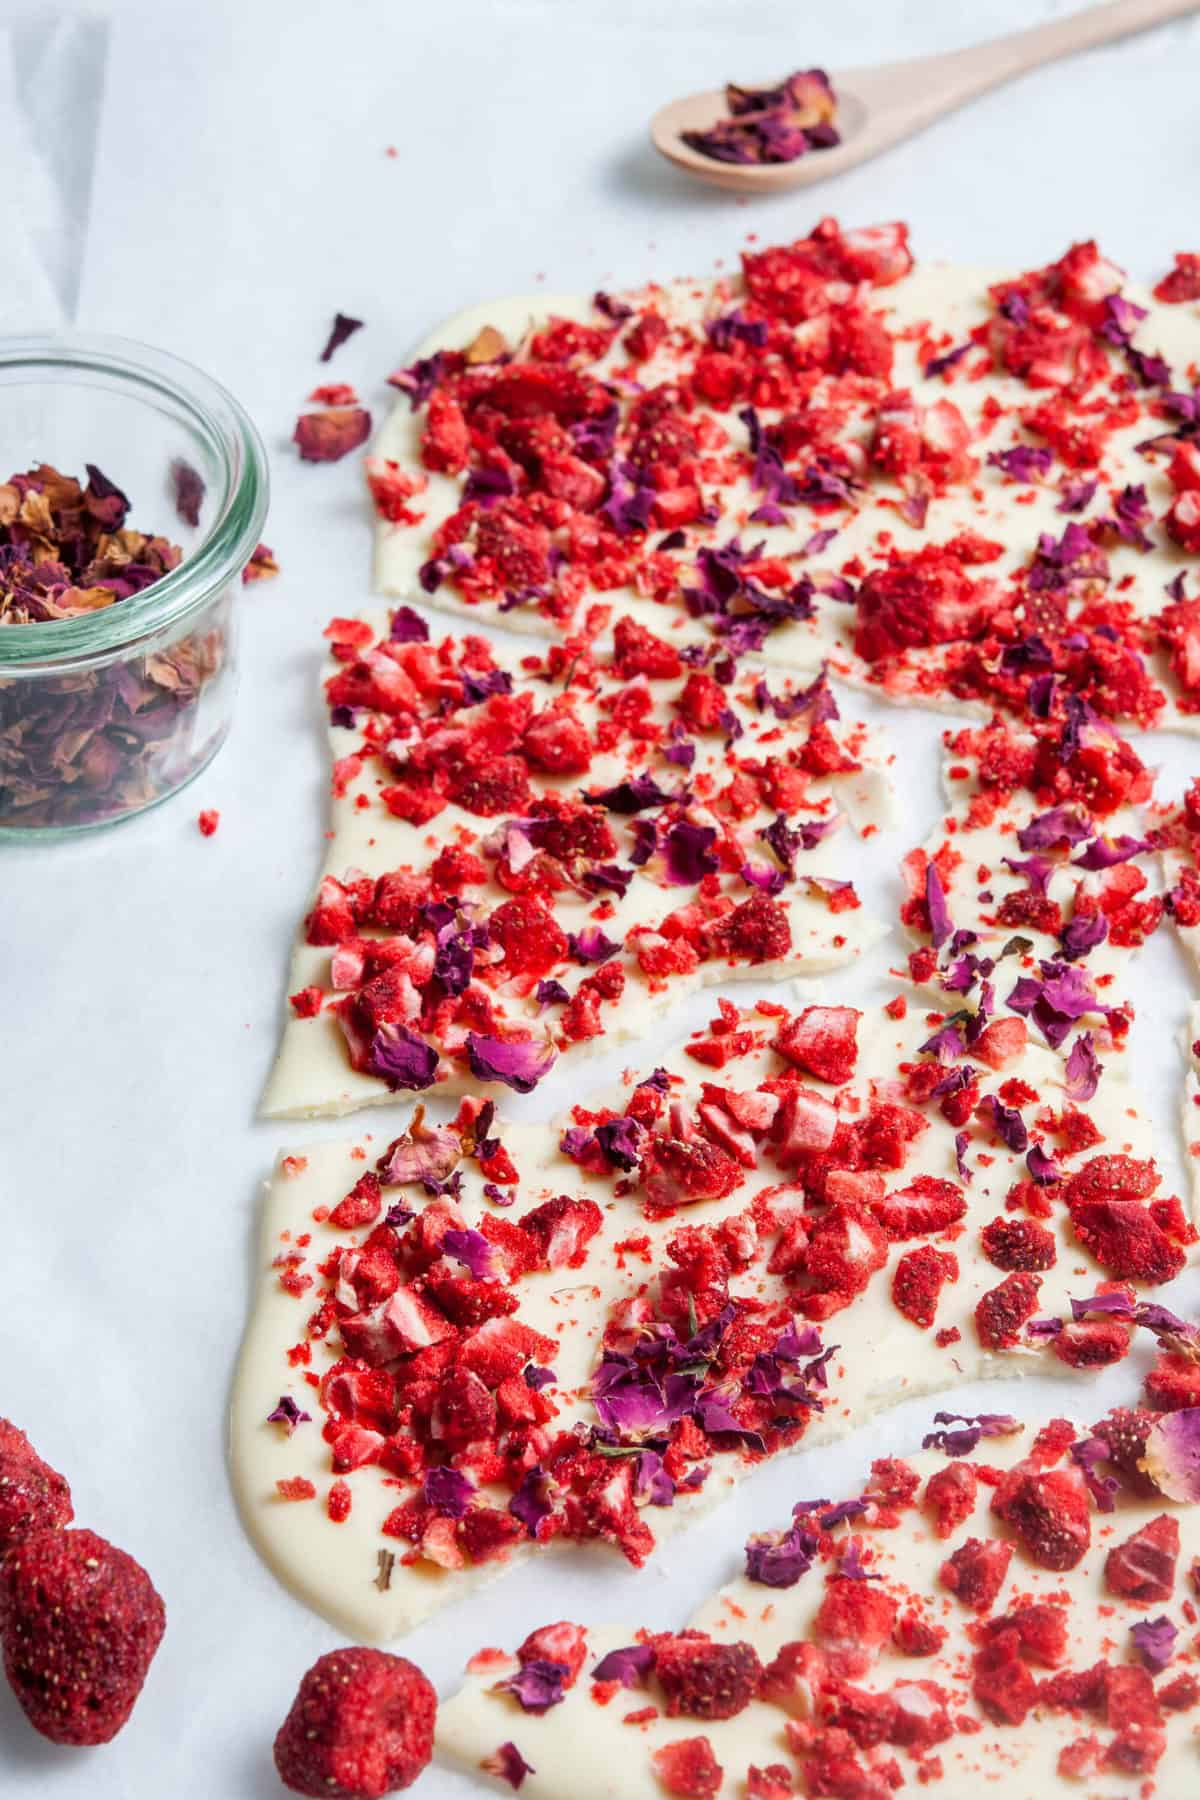 shards of chocolate bark, with some freeze dried strawberries at front, small glass dish of rose petals on side, and a small wooden spoon holding some rose petals at the back.